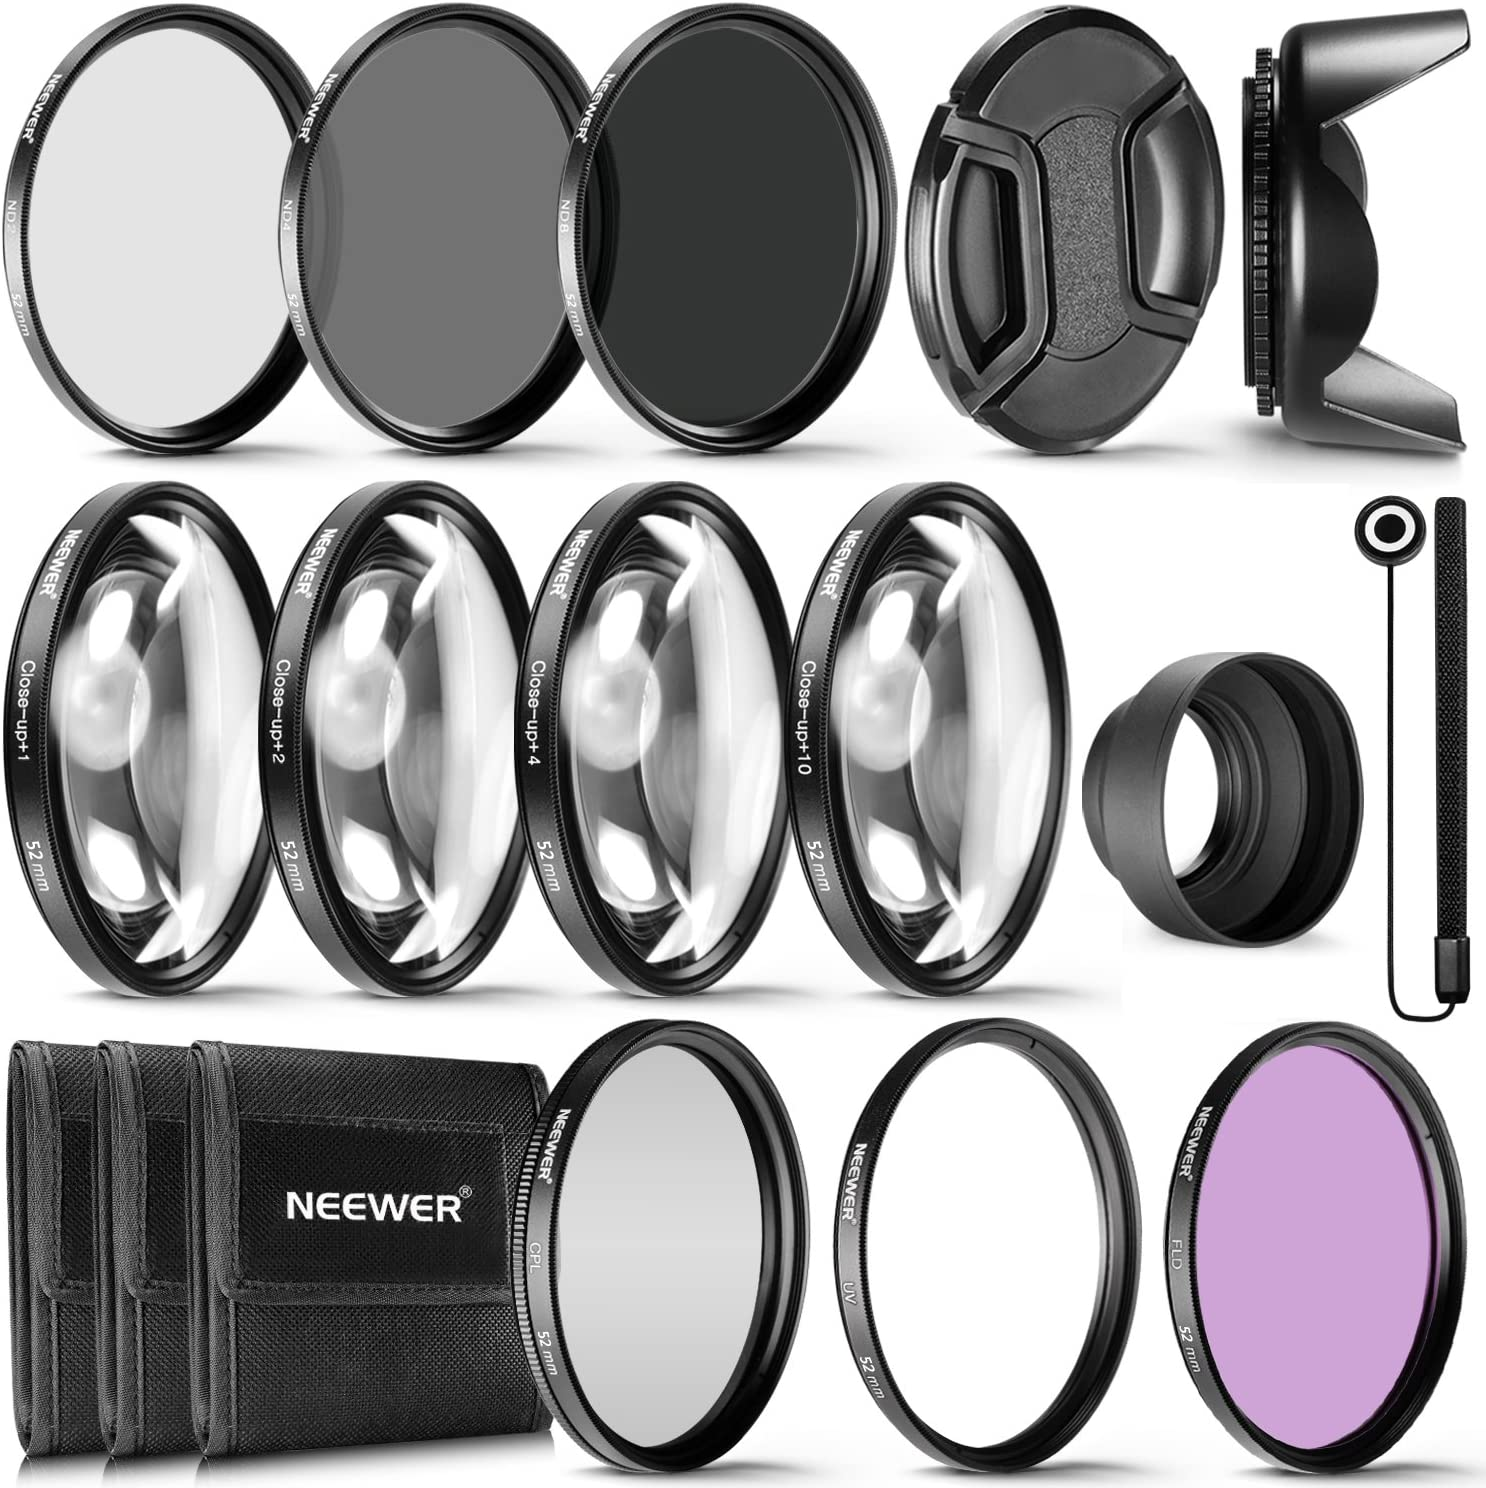 52mm Circular Polarizer Multicoated Glass Filter Microfiber Cleaning Cloth CPL for Pentax K-01